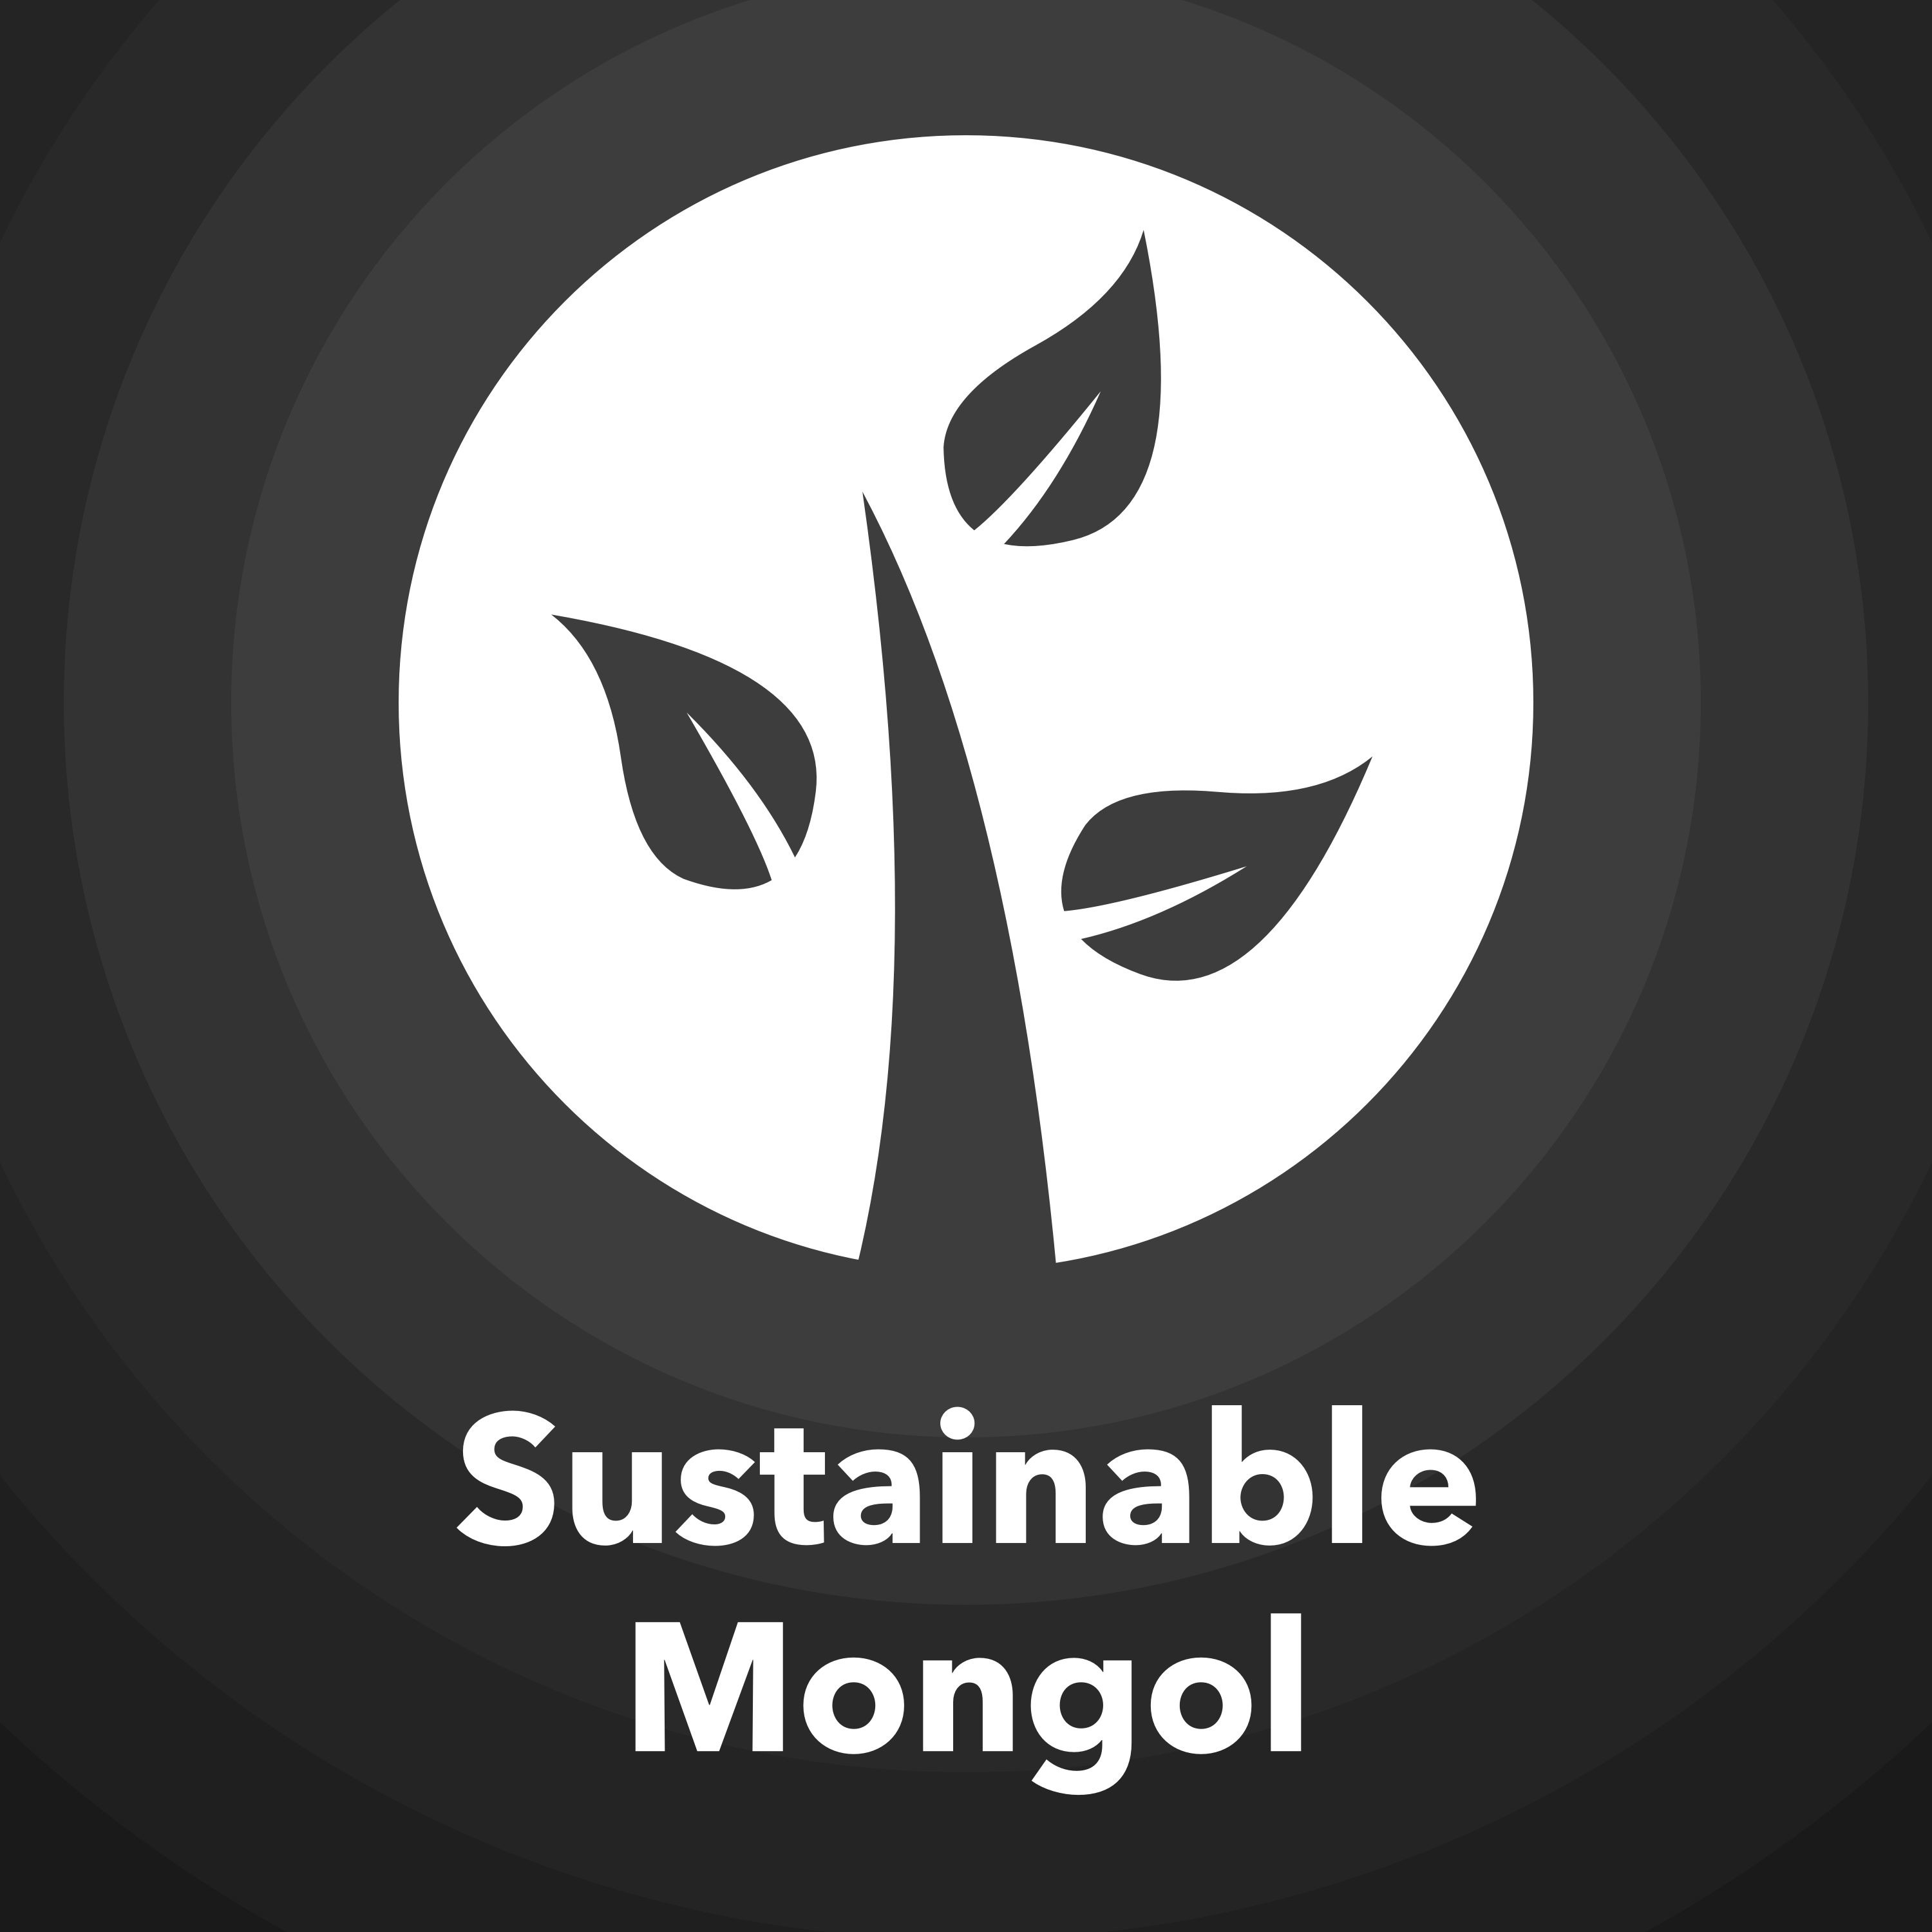 Sustainable Mongol